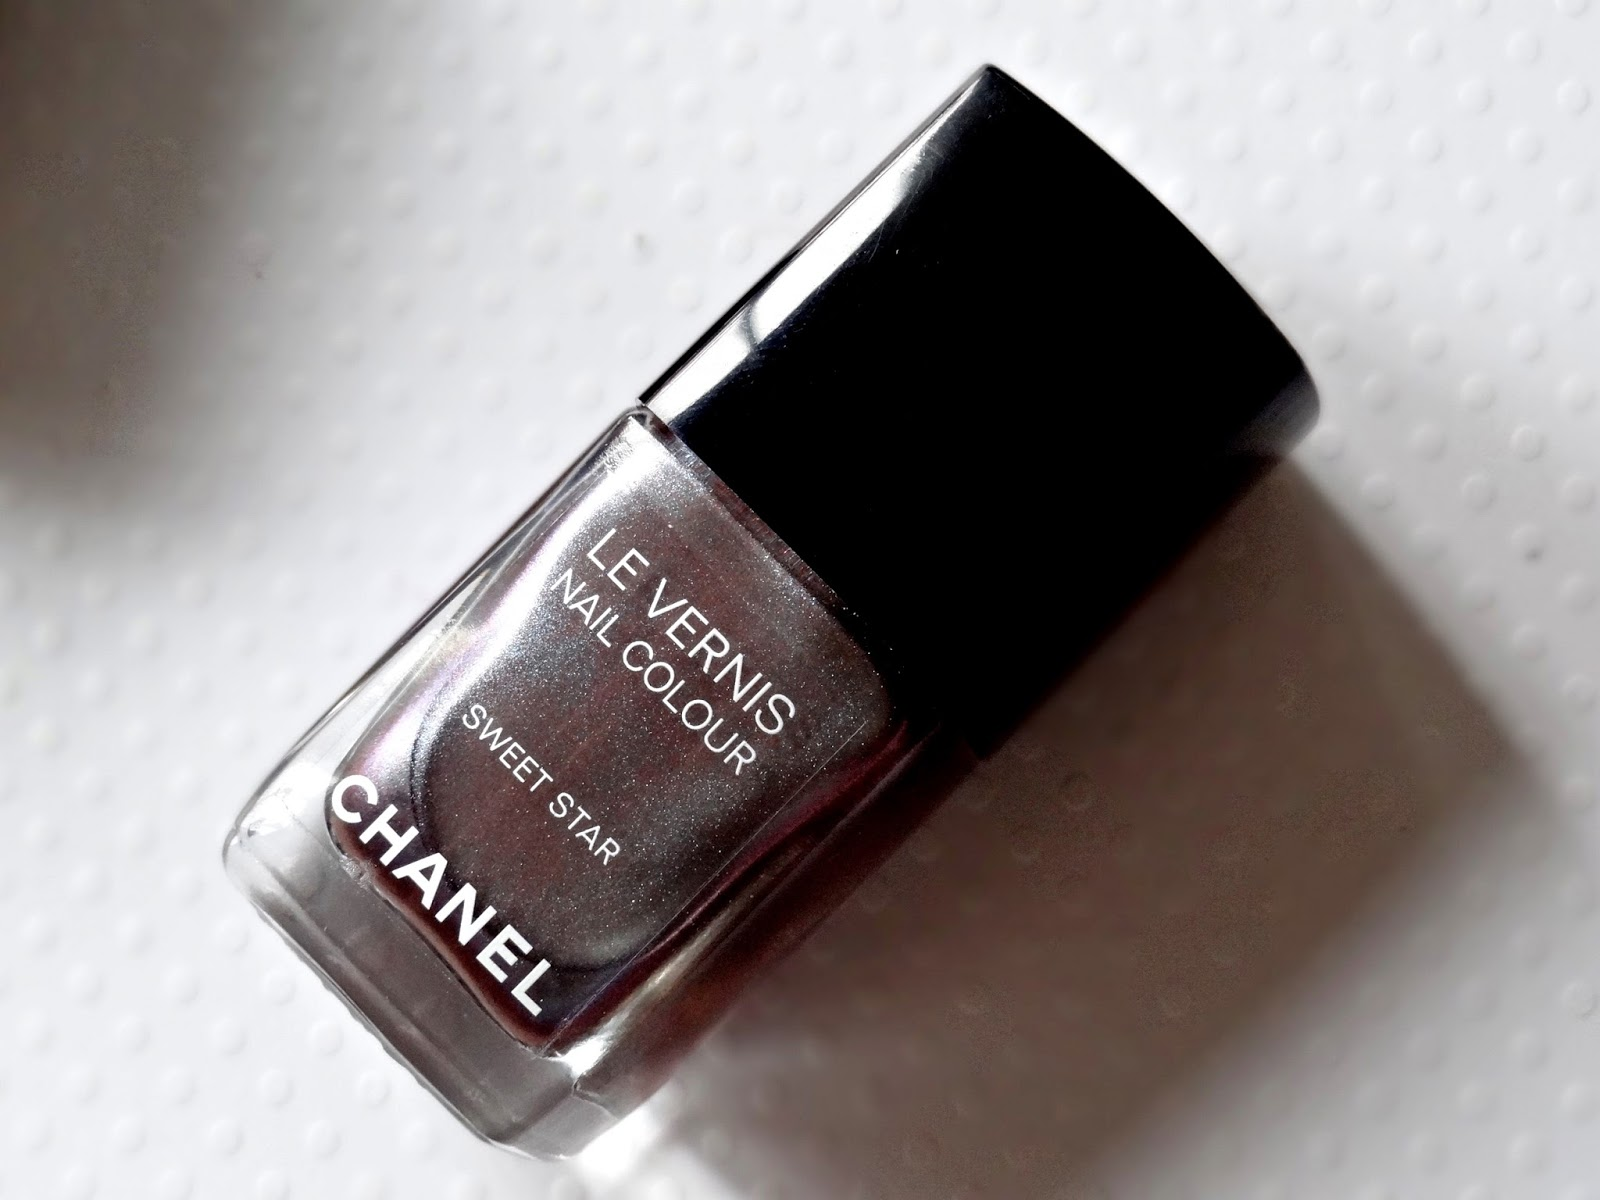 Chanel Le Vernis in Sweet Star Limited Edition